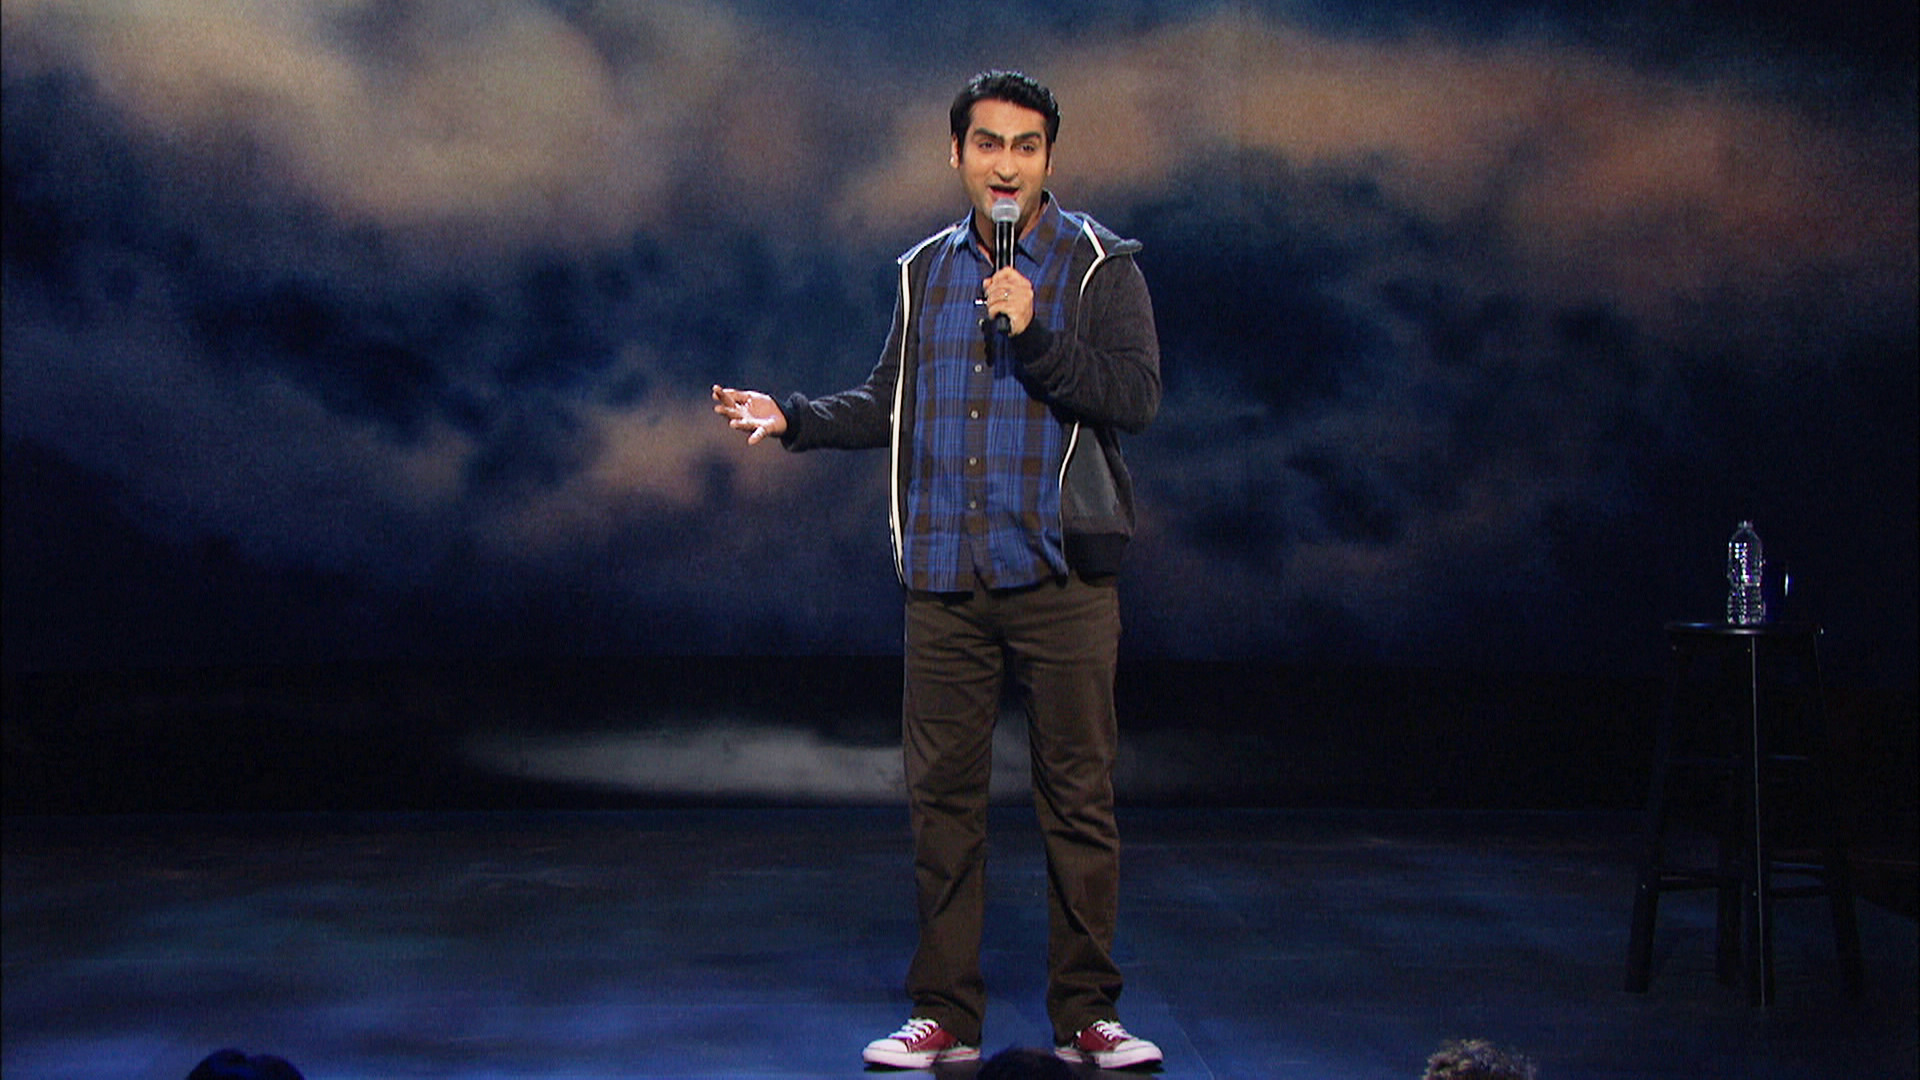 Uncensored - Kumail Nanjiani - Brooklyn Is Unpredictably Scary